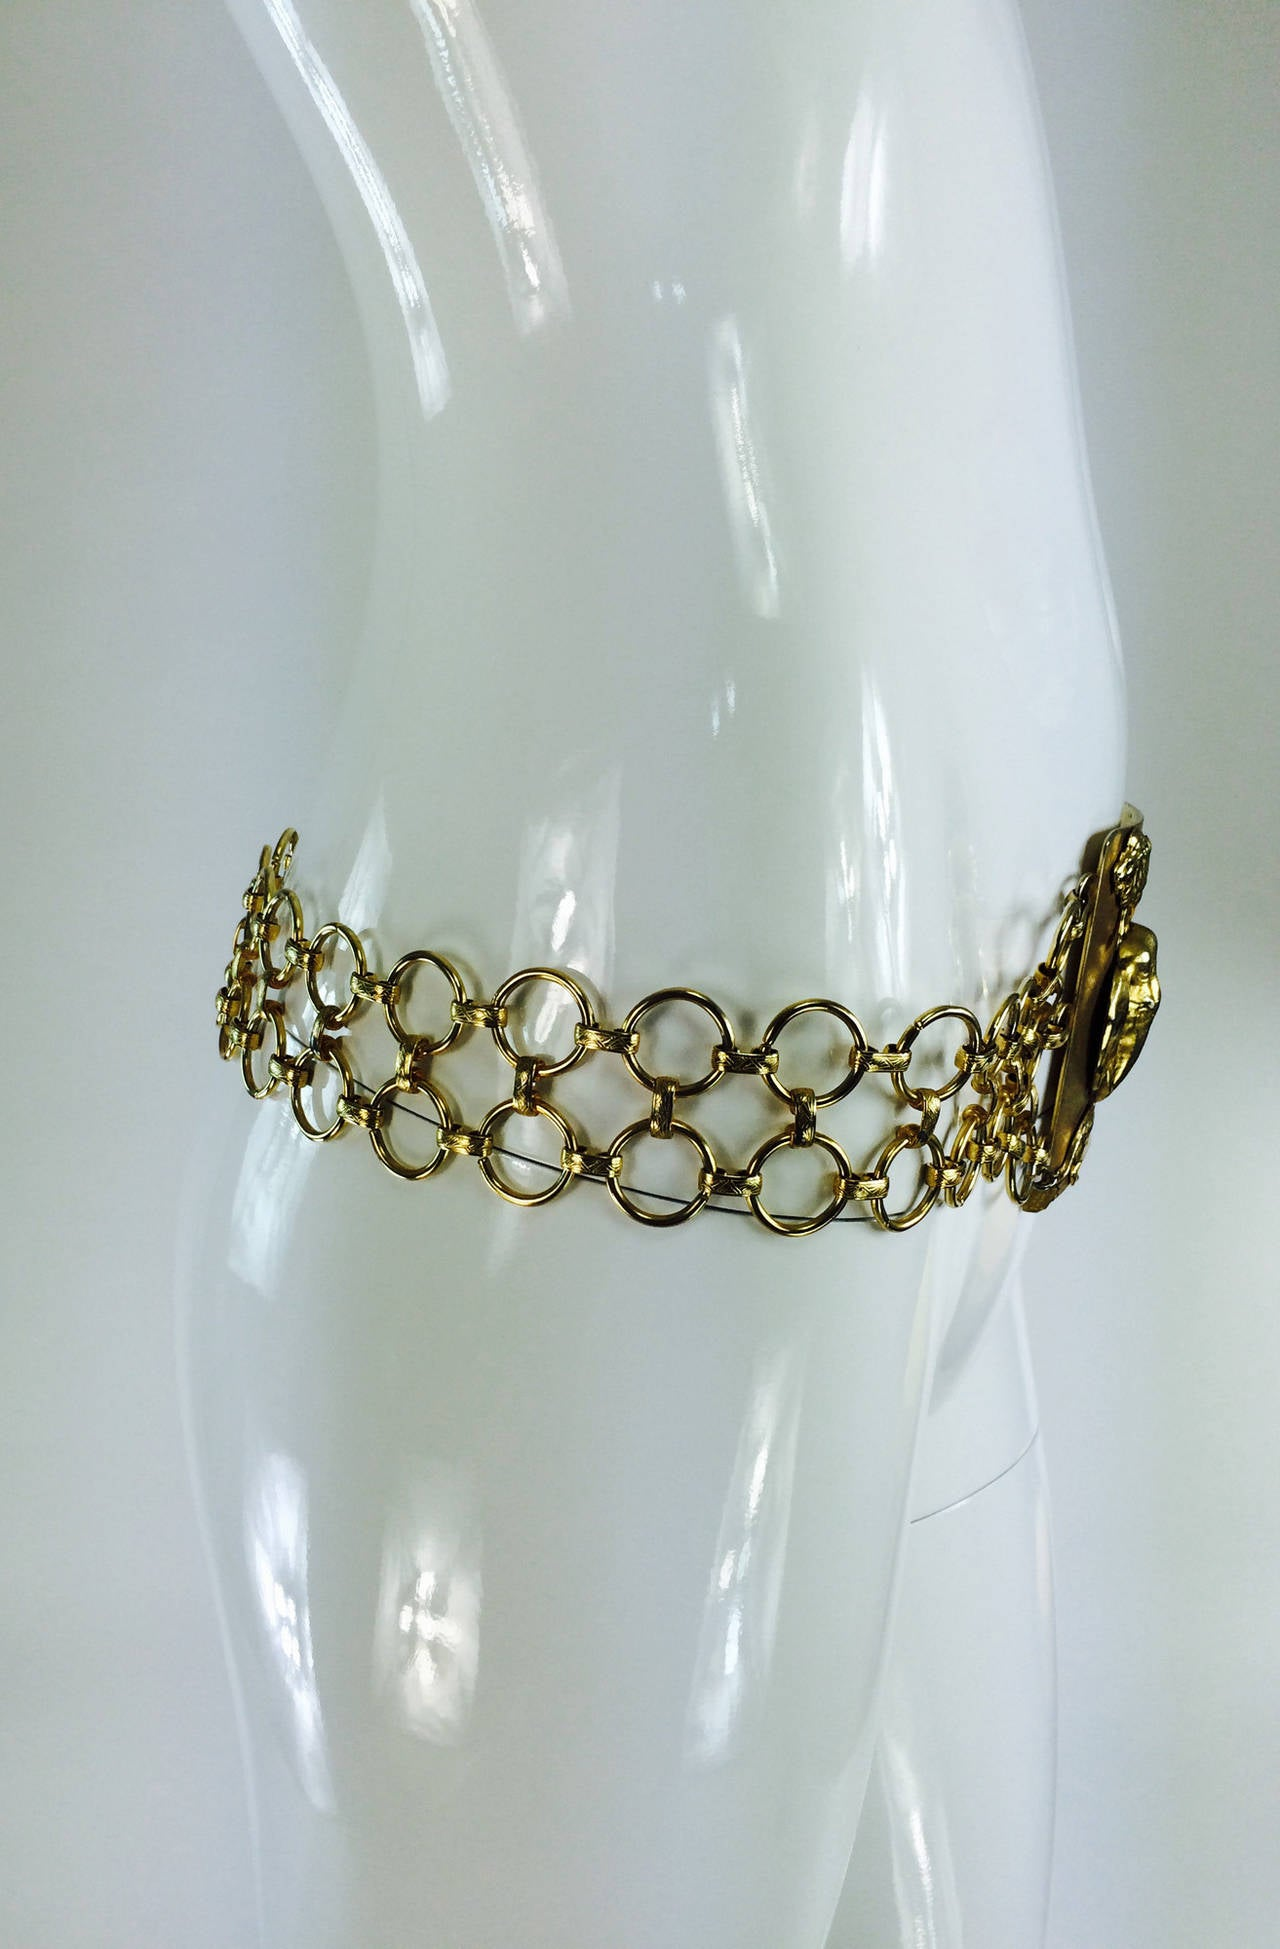 1970s Christian Dior jungle safari chain belt 4